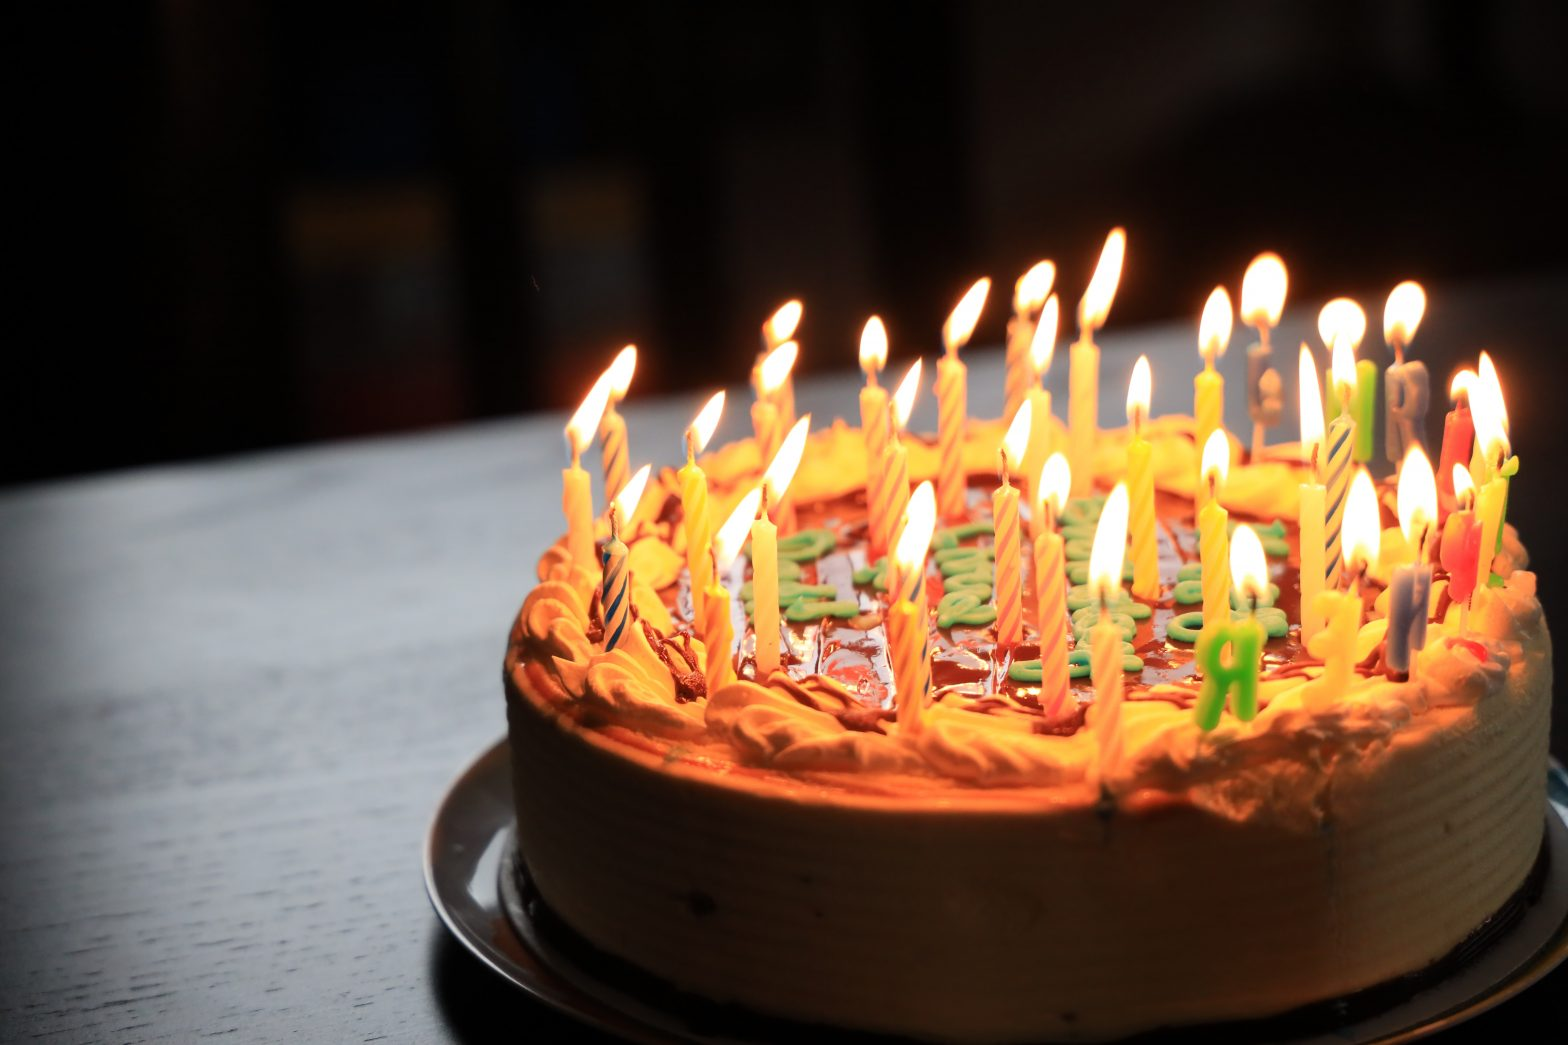 birthday cake richard burlton unsplash